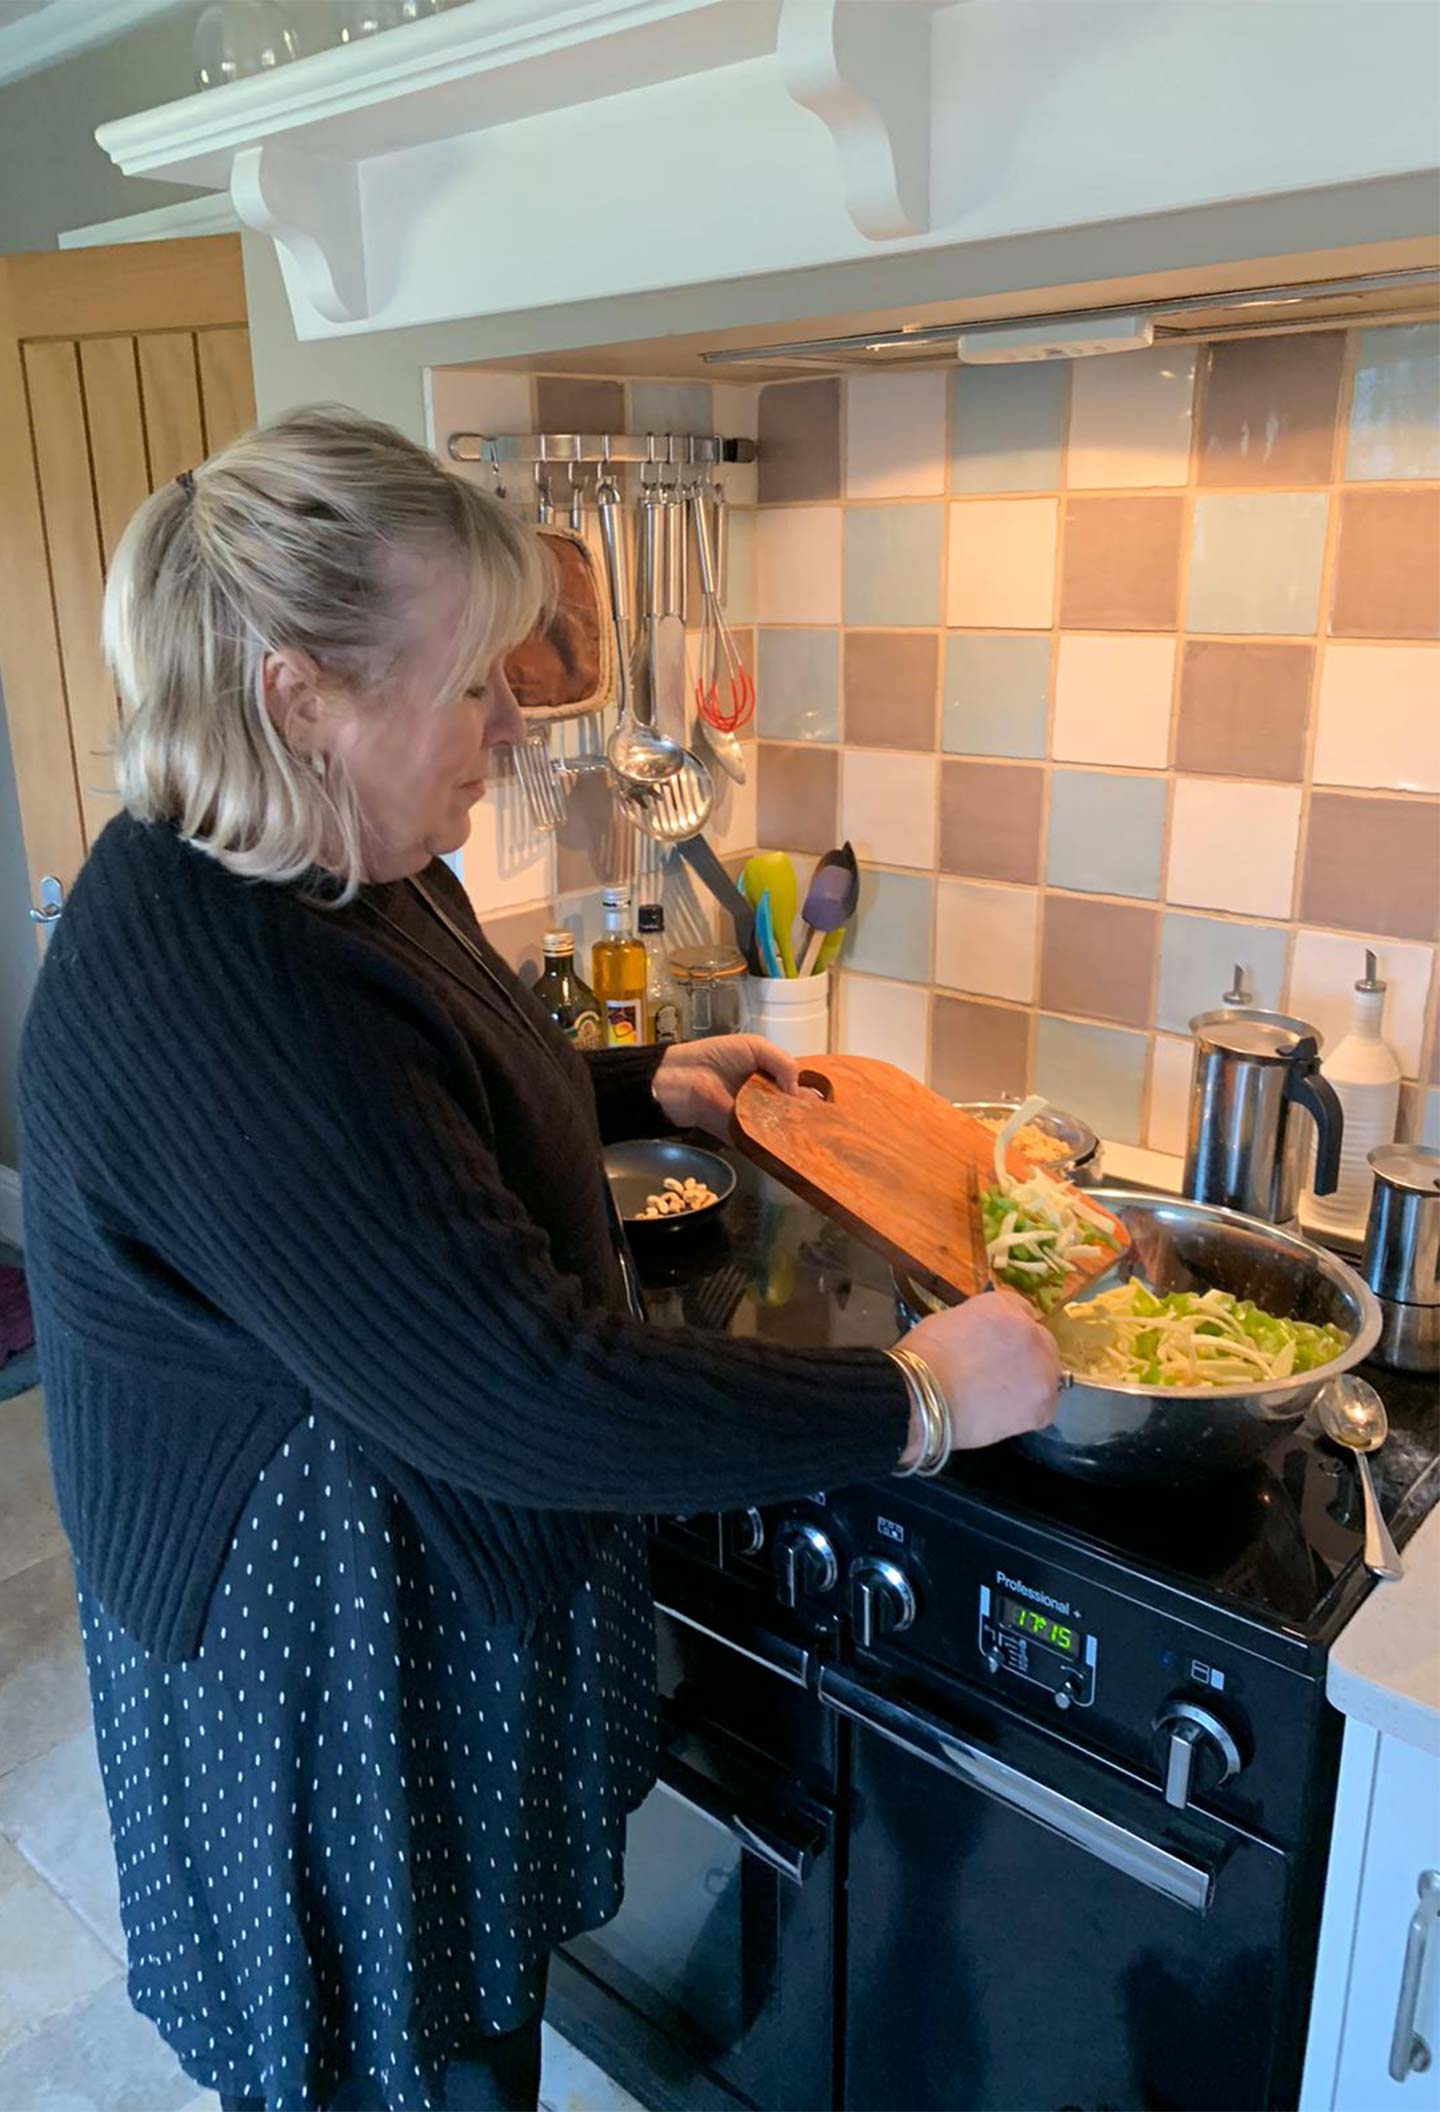 bridget cooking in black cashmere jumper